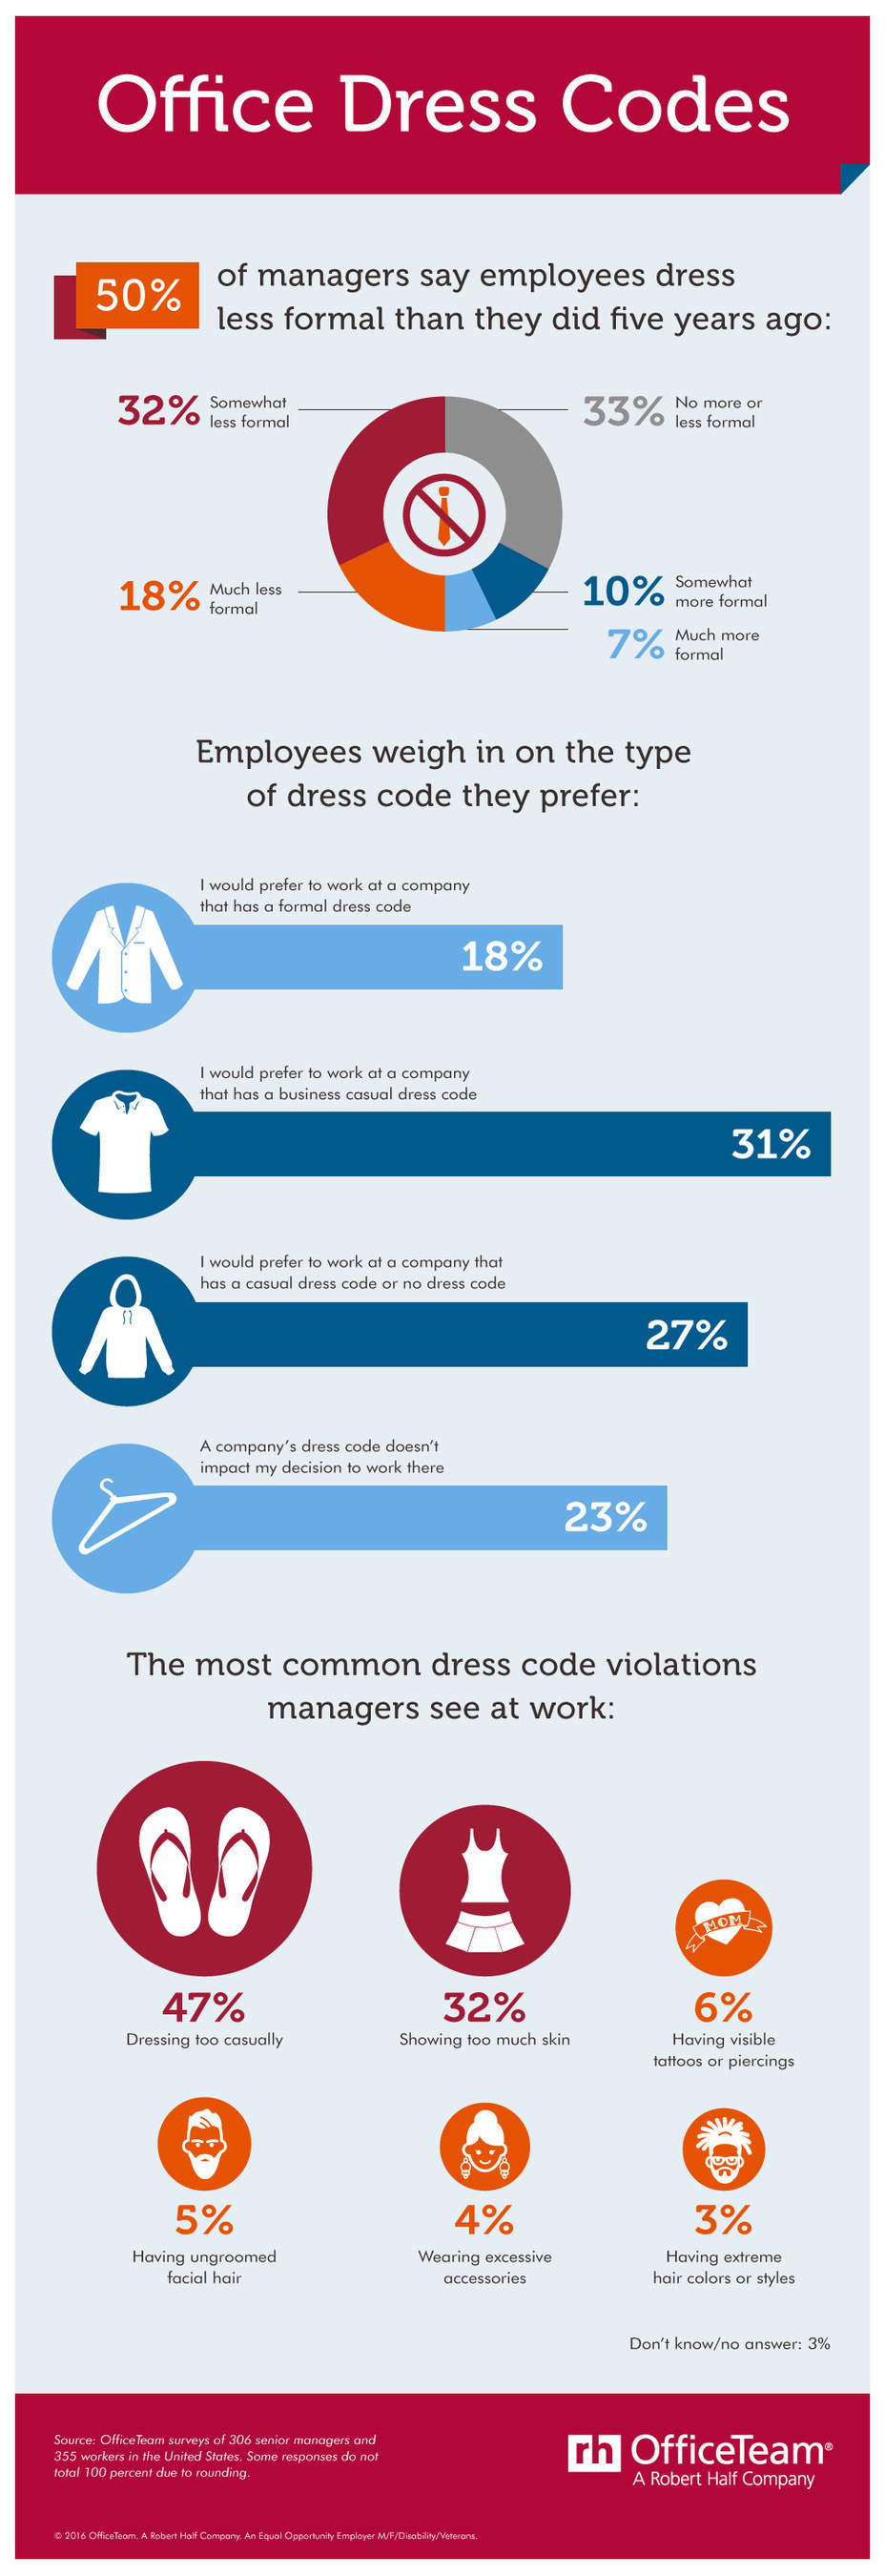 1/2 of senior managers said employees wear less formal clothing than they did five years ago. In addition, nearly 1/3 (31%) of office workers would prefer to be at a company with a business casual dress code; 27% favor a casual dress code or no dress code at all. Senior managers also identified dressing too casually (47%) as the most common dress code violation, followed by showing too much skin (32%).